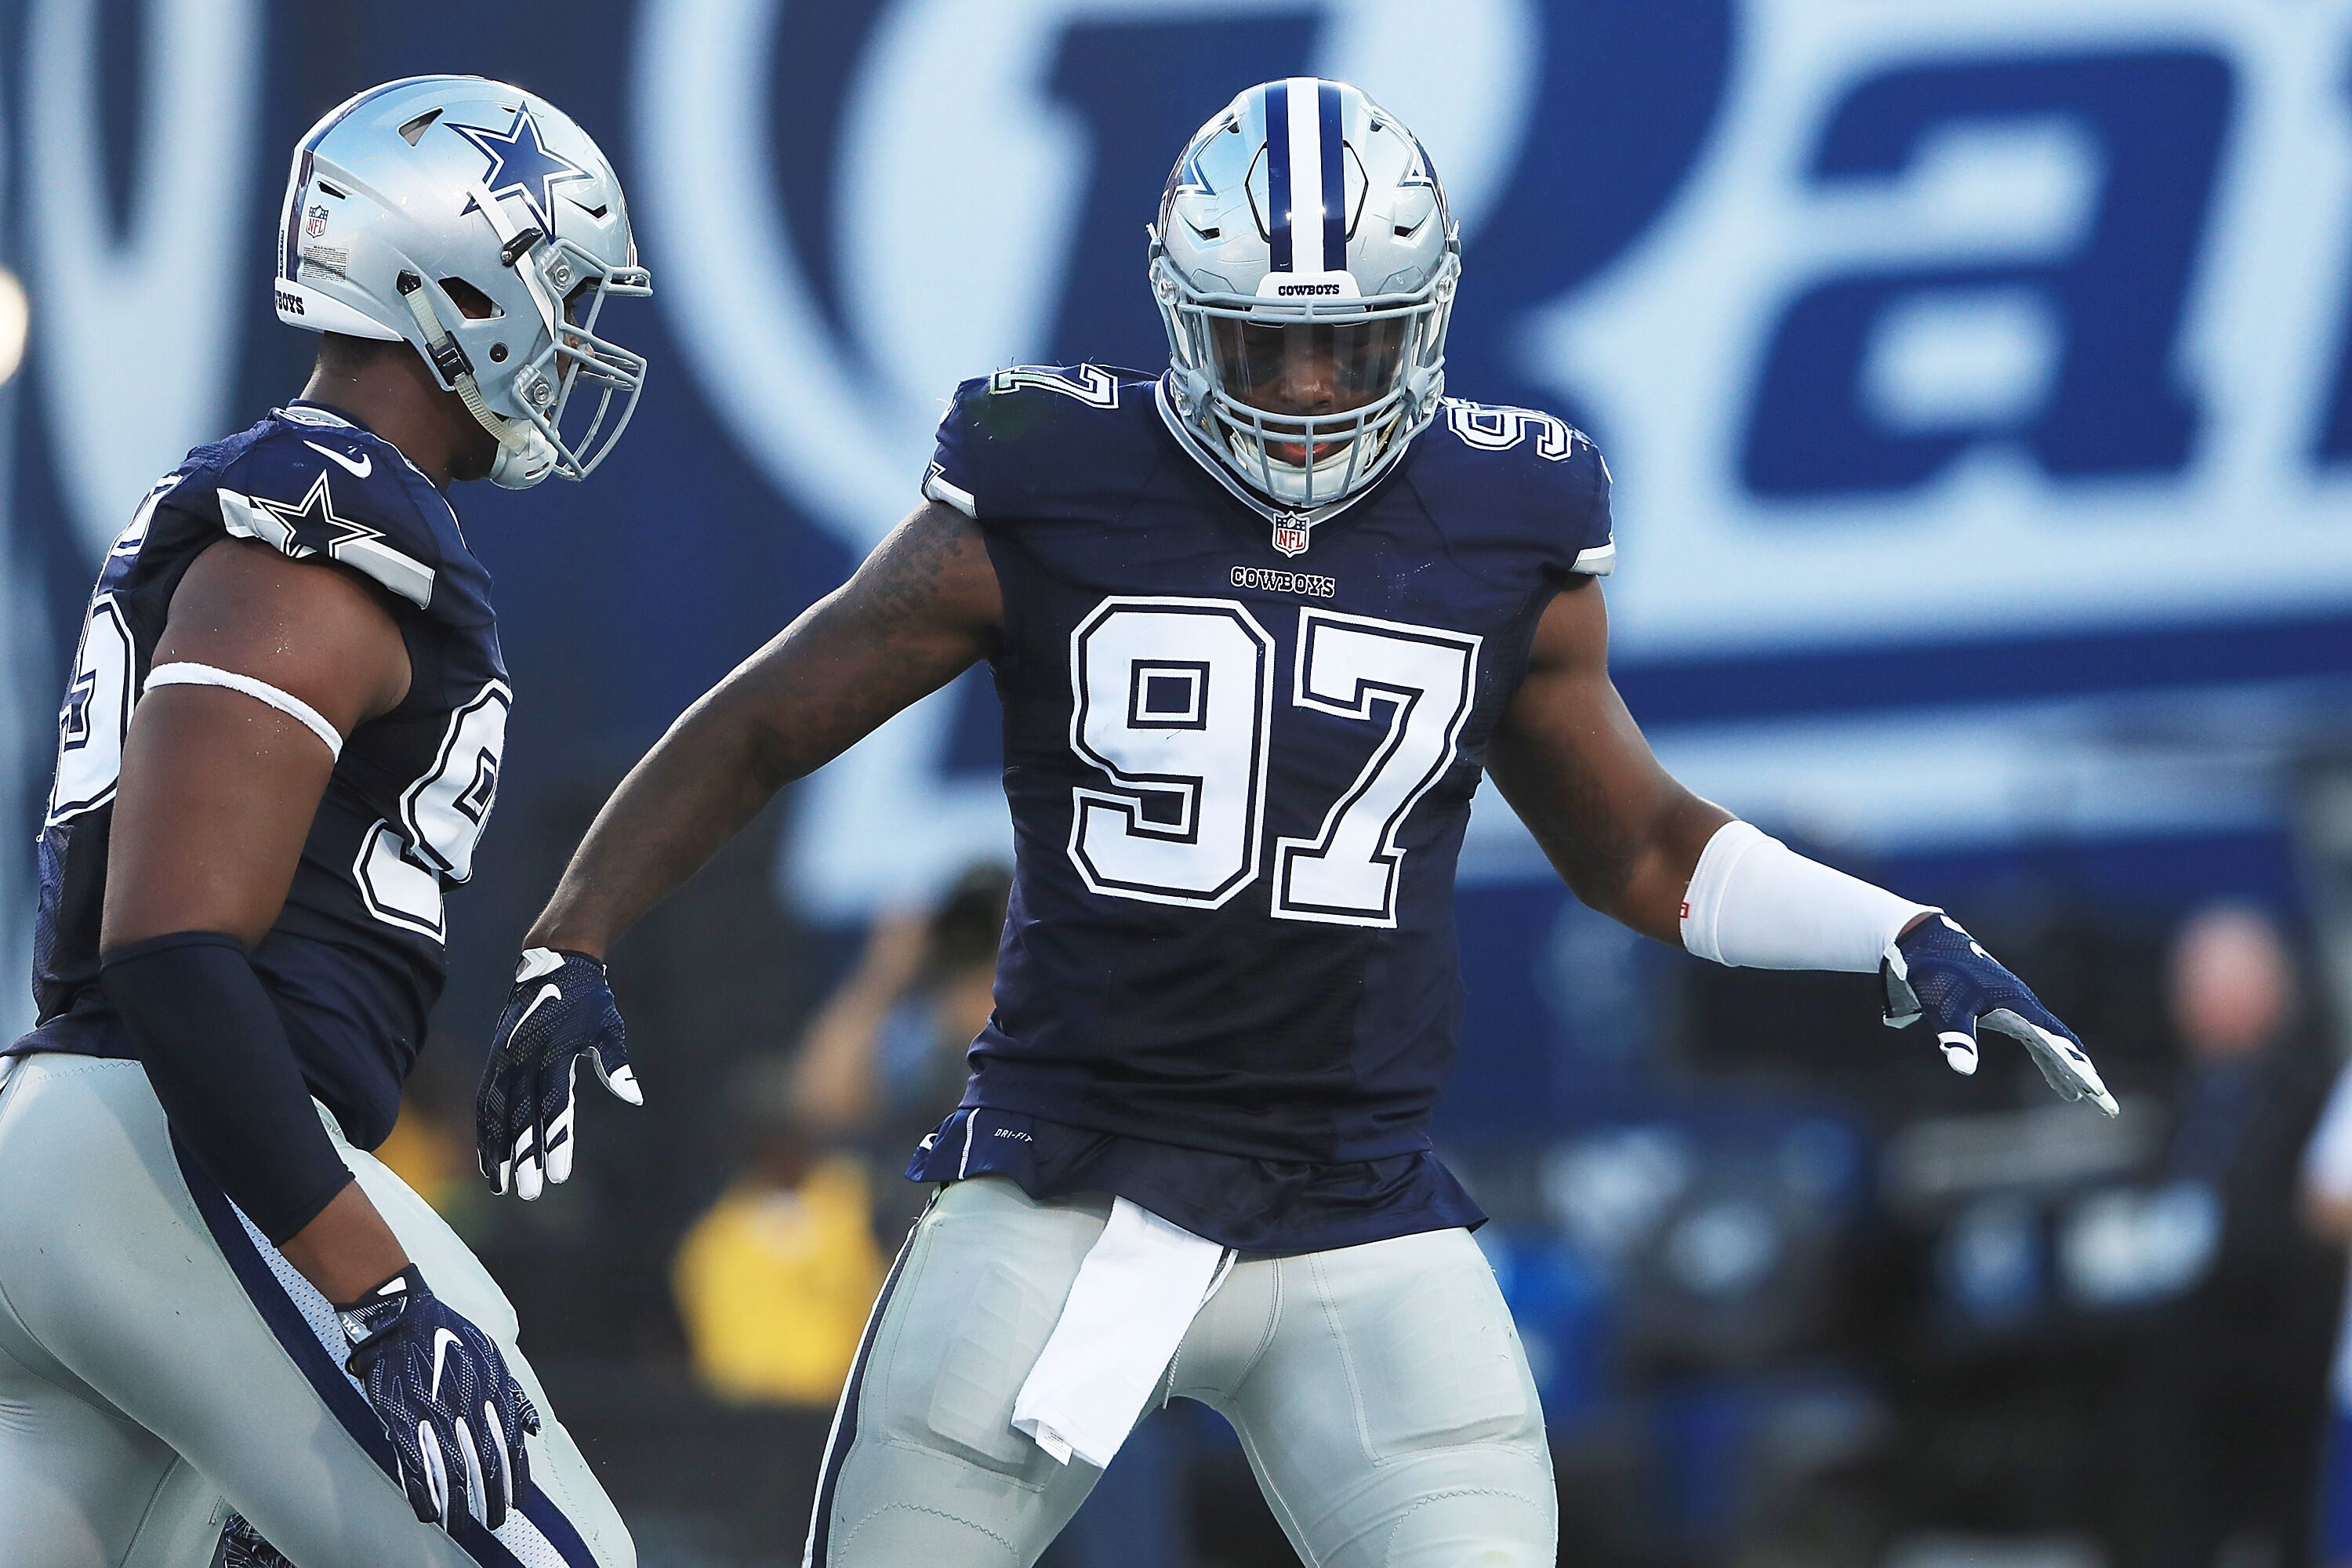 830900802-dallas-cowboys-v-los-angeles-rams.jpg